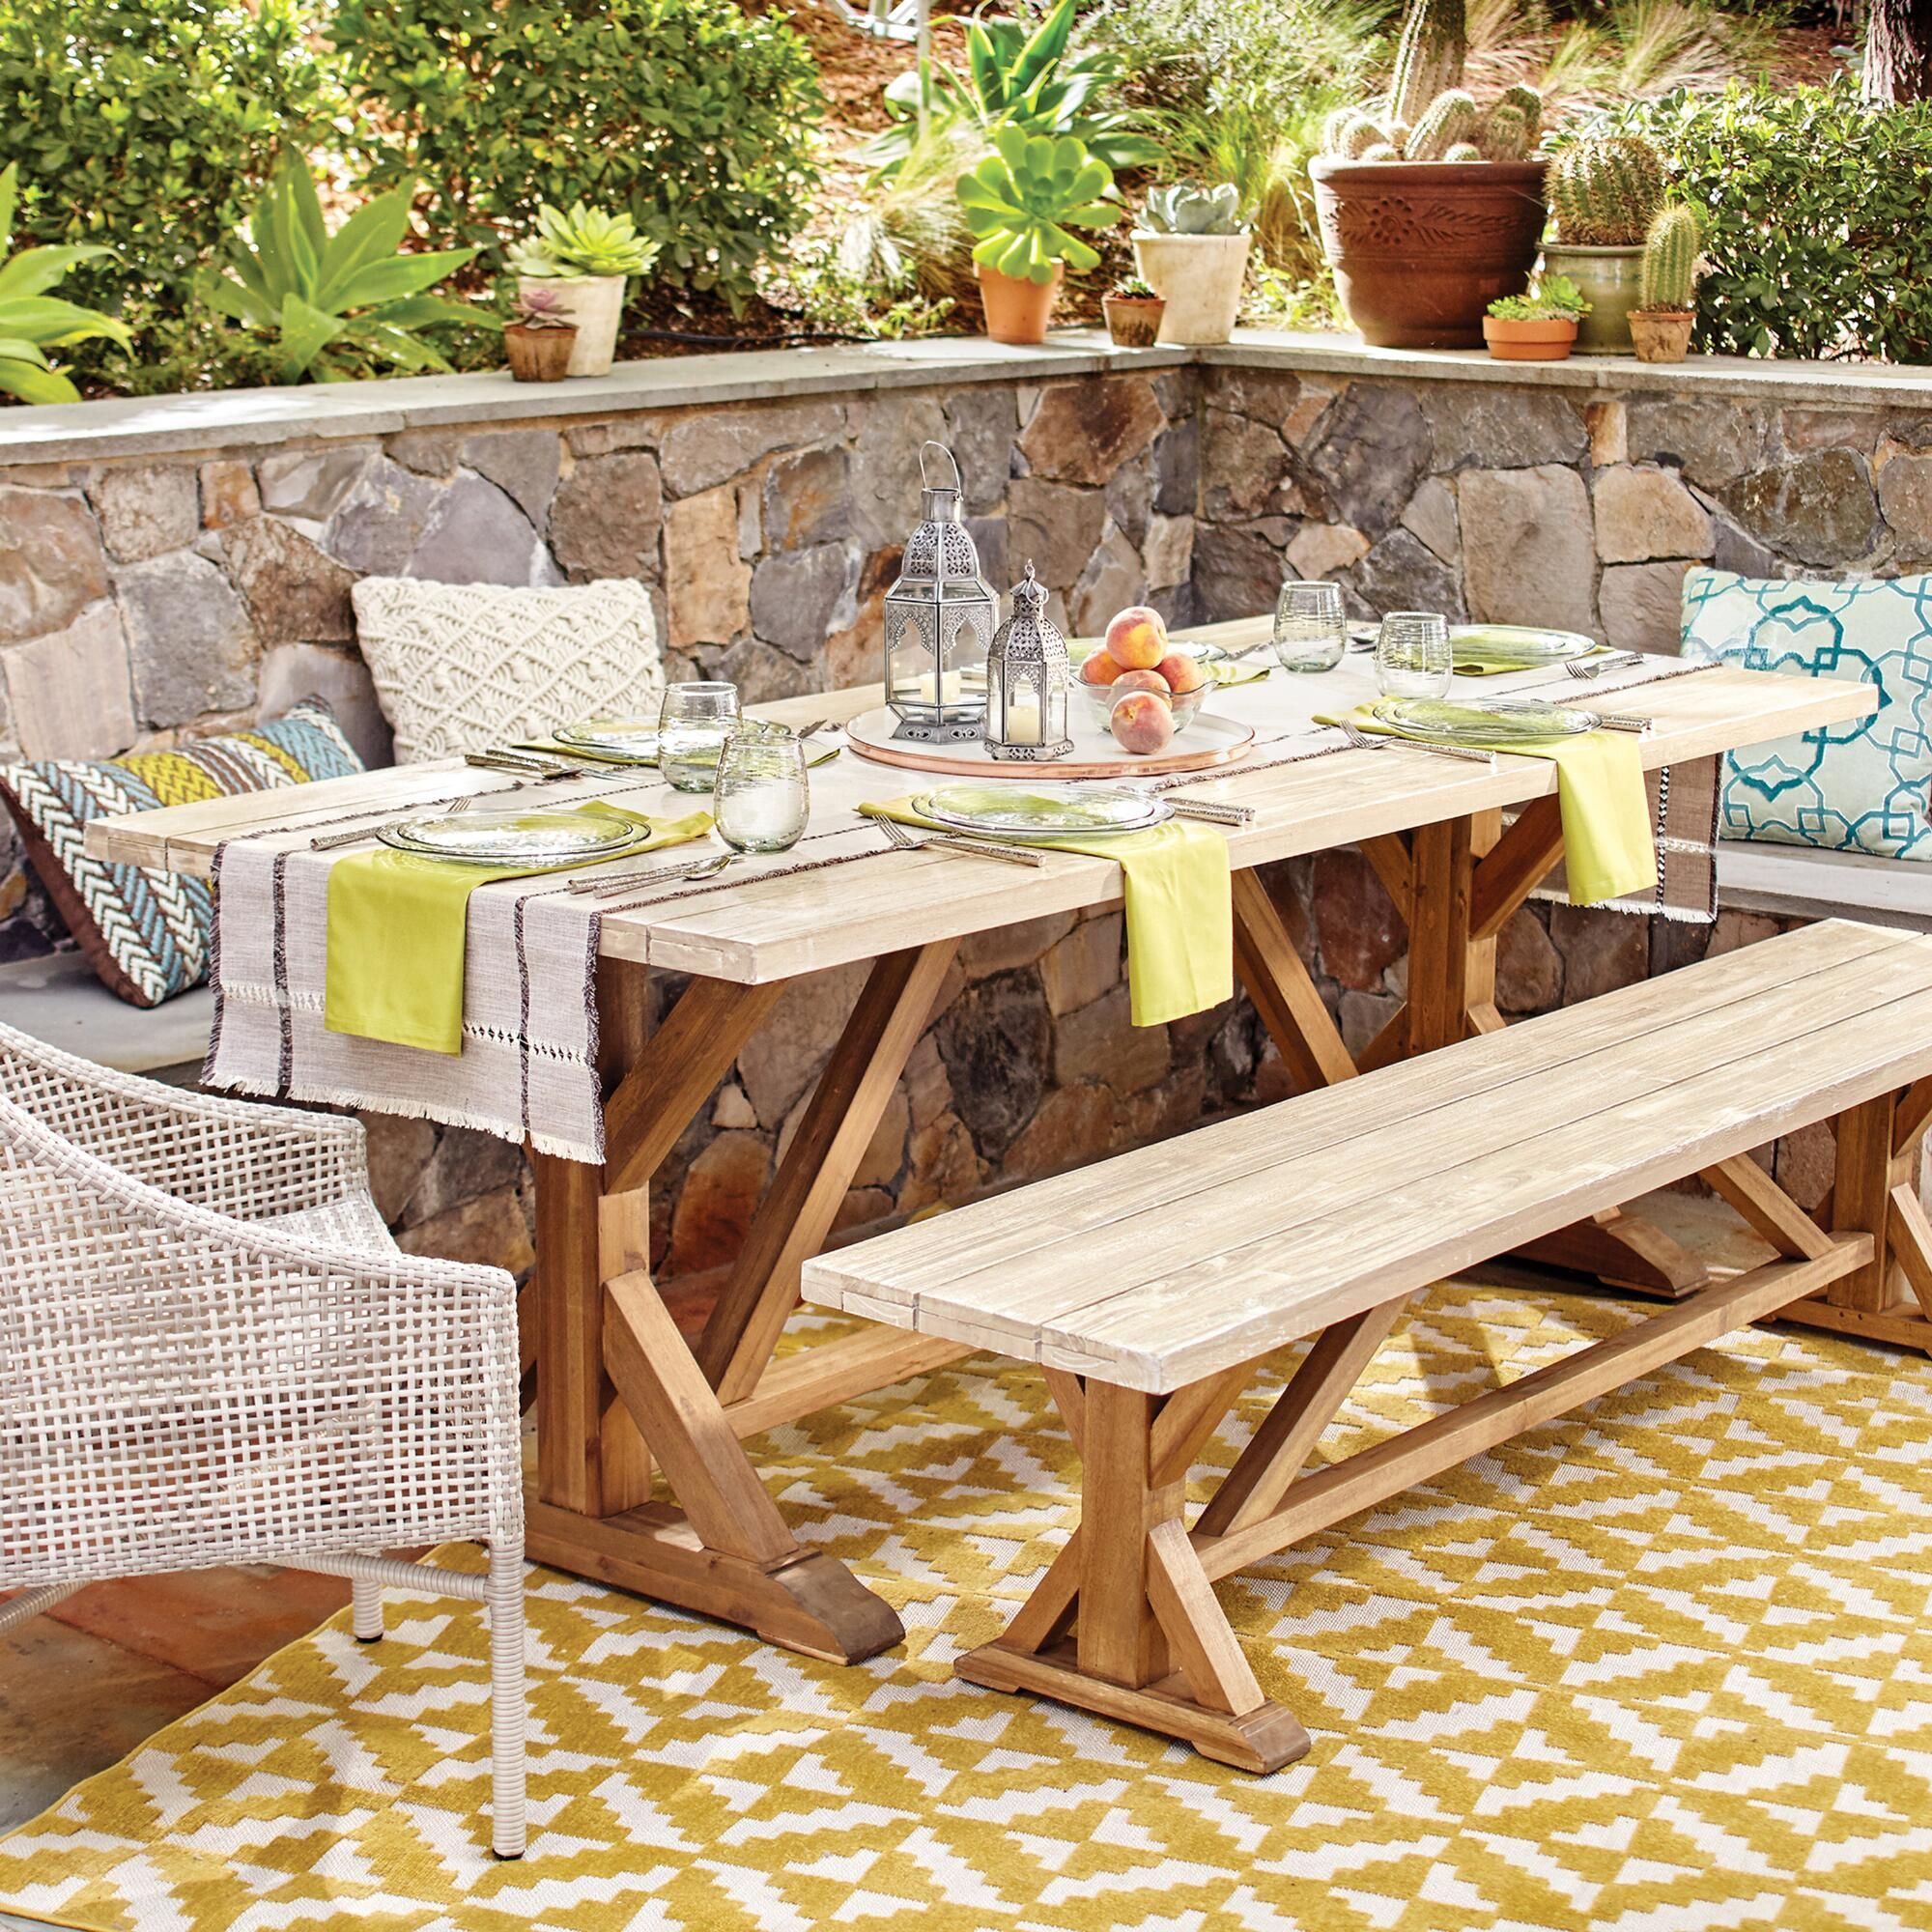 Our outdoor dining collection is fit for a sizeable soiree it features an extra long dining table and a dining bench both crafted of acacia wood with a